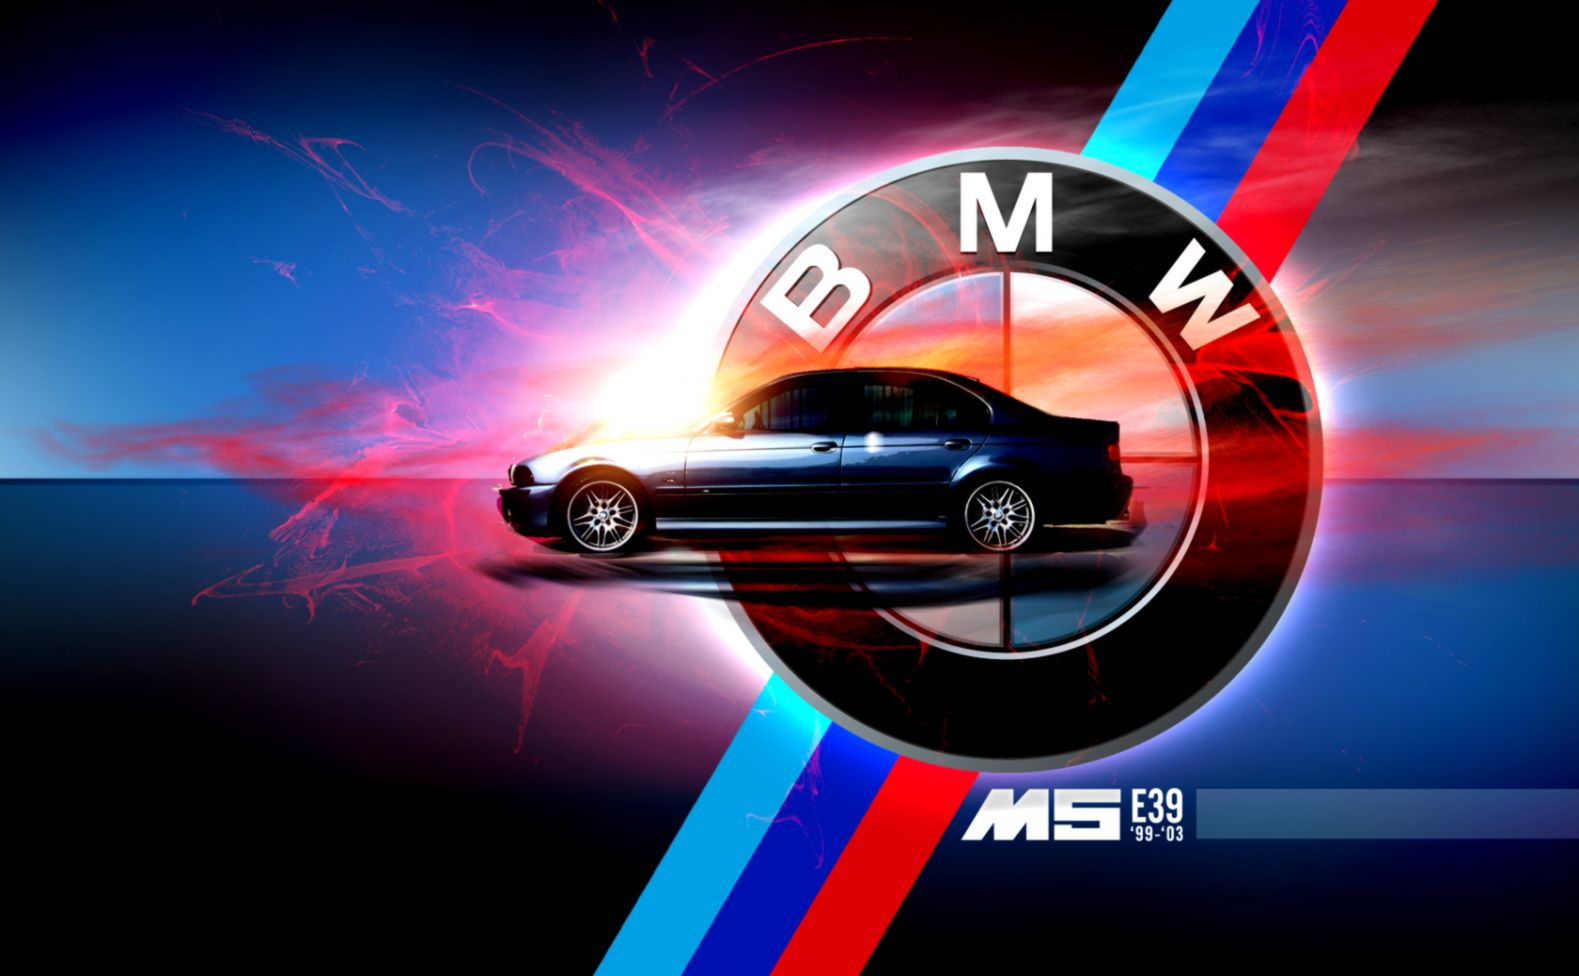 Bmw Logo Images Hd Desktop Best Image Background